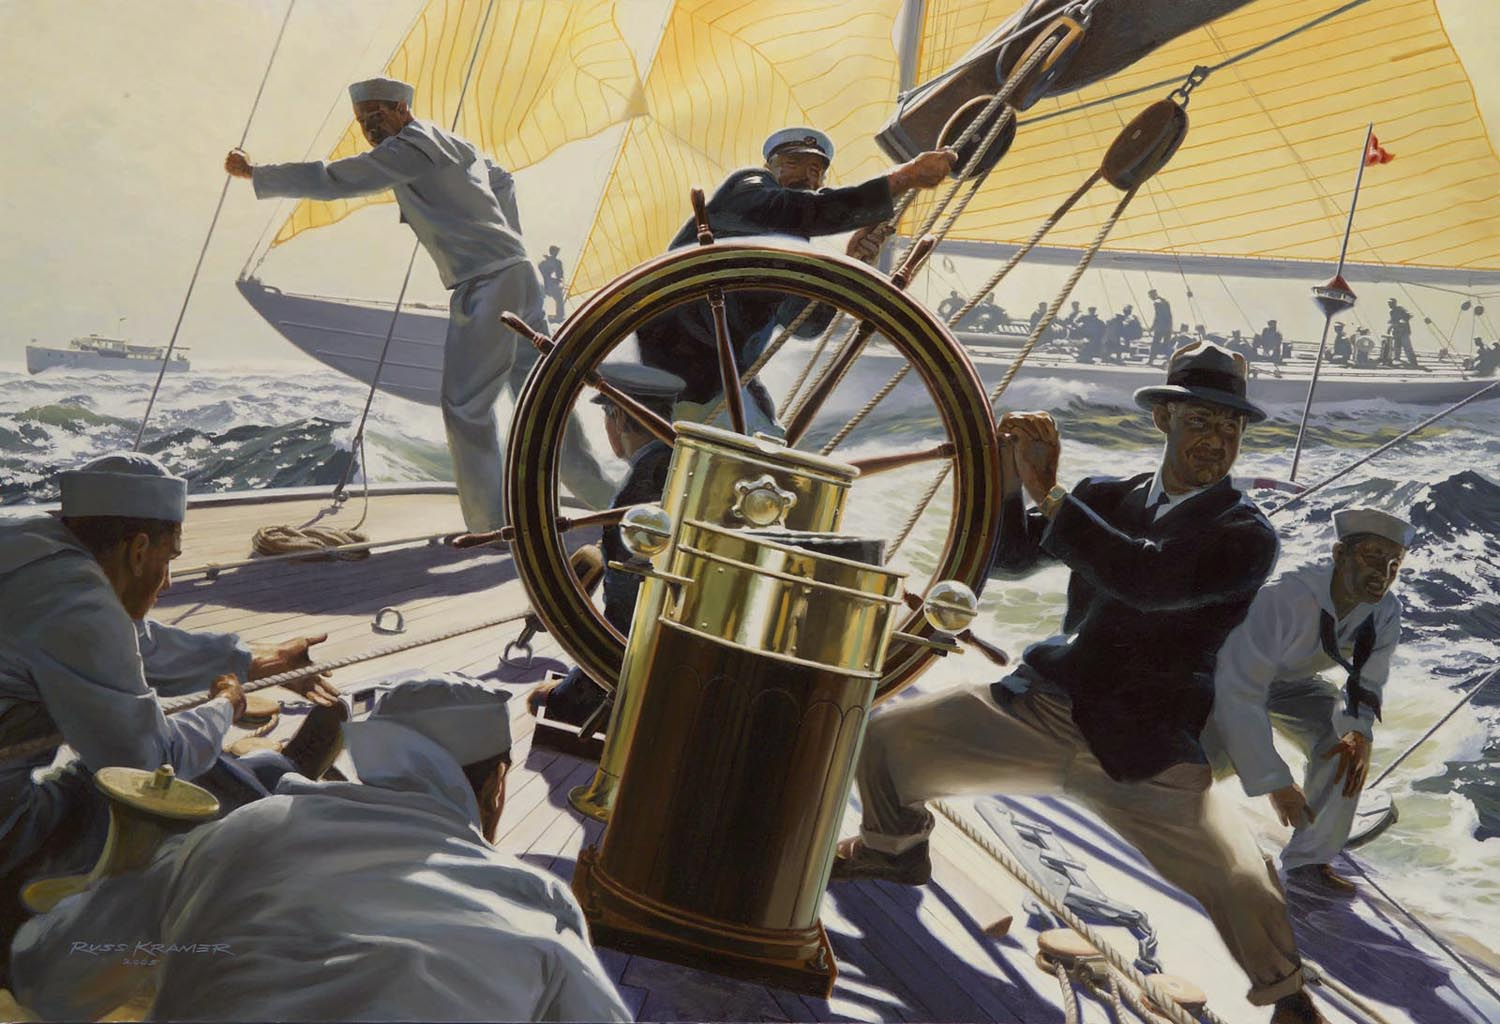 Painting by Russ Kramer of action aboard Weetamoe during trials of the America's Cup 1930